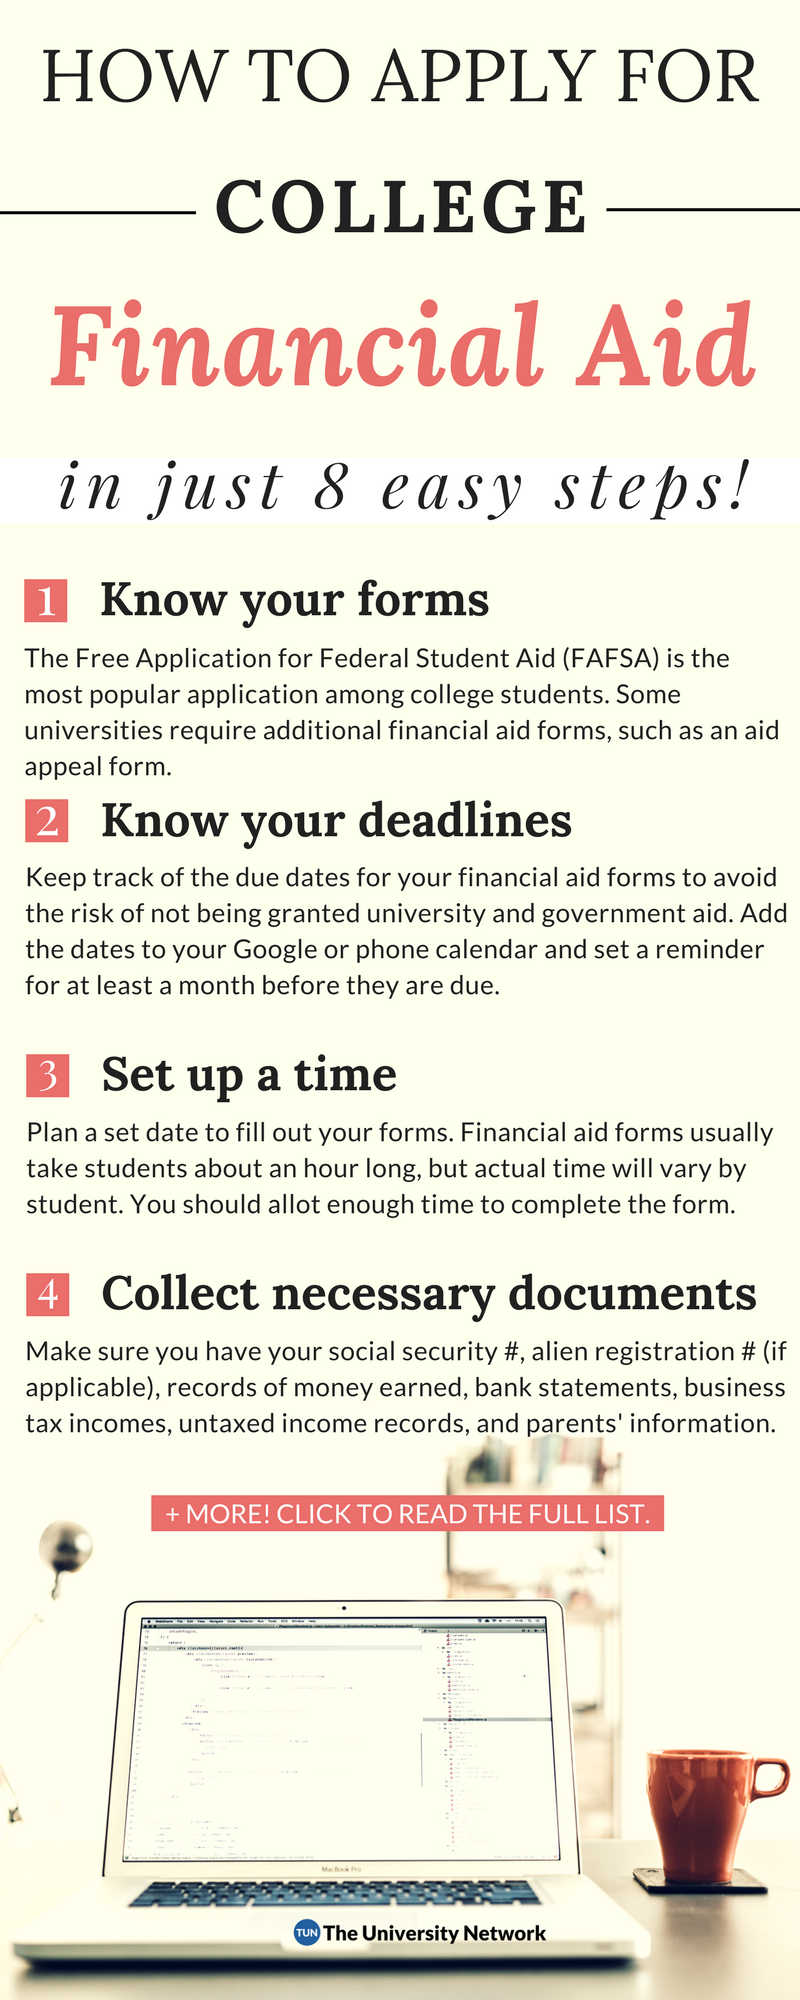 Applying For Financial Aid In 8 Easy Steps The University Network Financial Aid For College Apply For College Scholarships For College